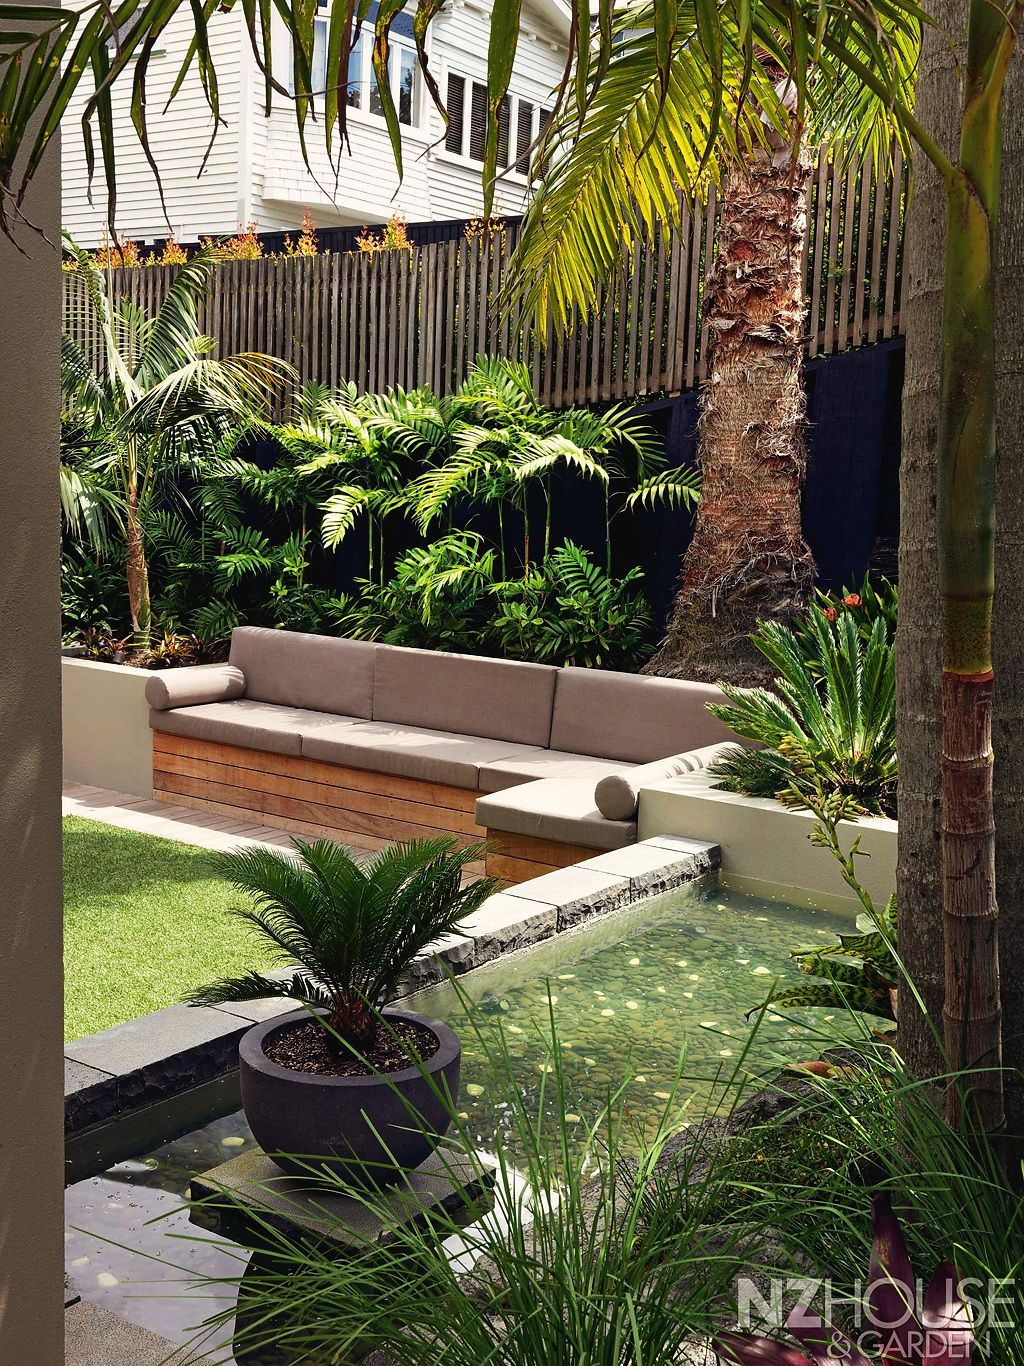 Home landscape design via christina khandan irvine for Courtyard landscaping